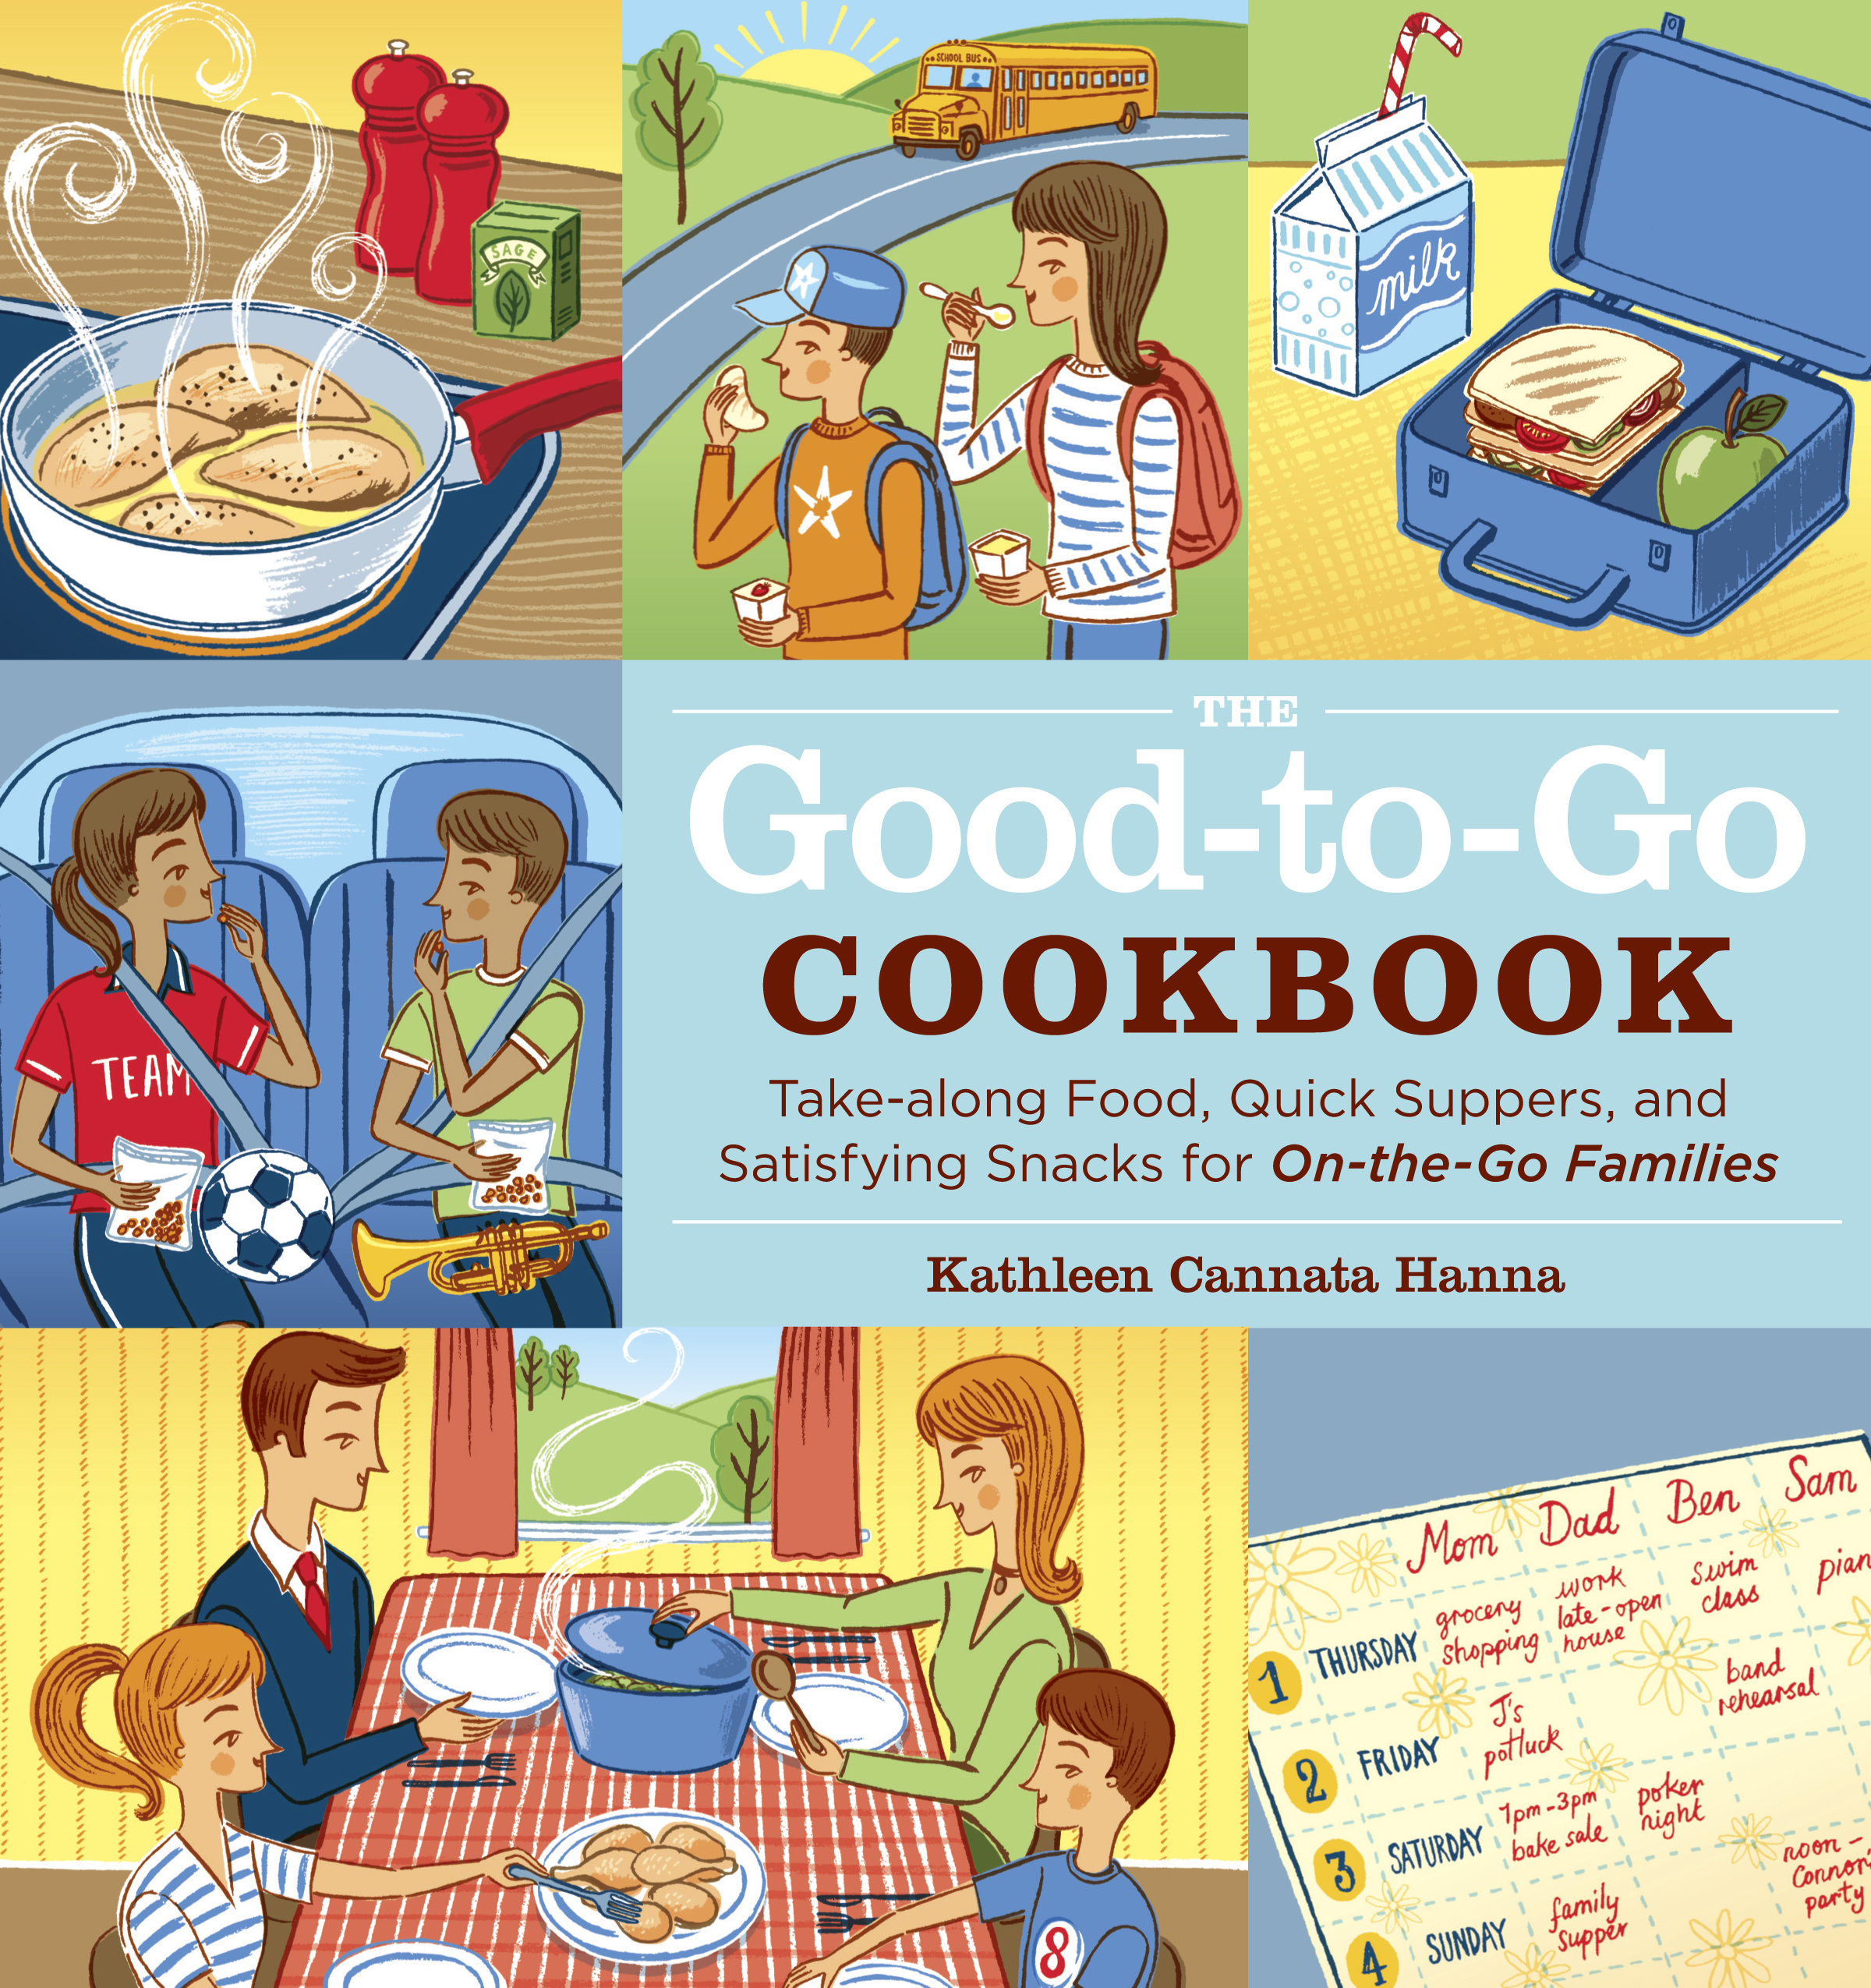 The Good-to-Go Cookbook : Take-along Food, Quick Suppers, and Satisfying Snacks for On-The-Go Families